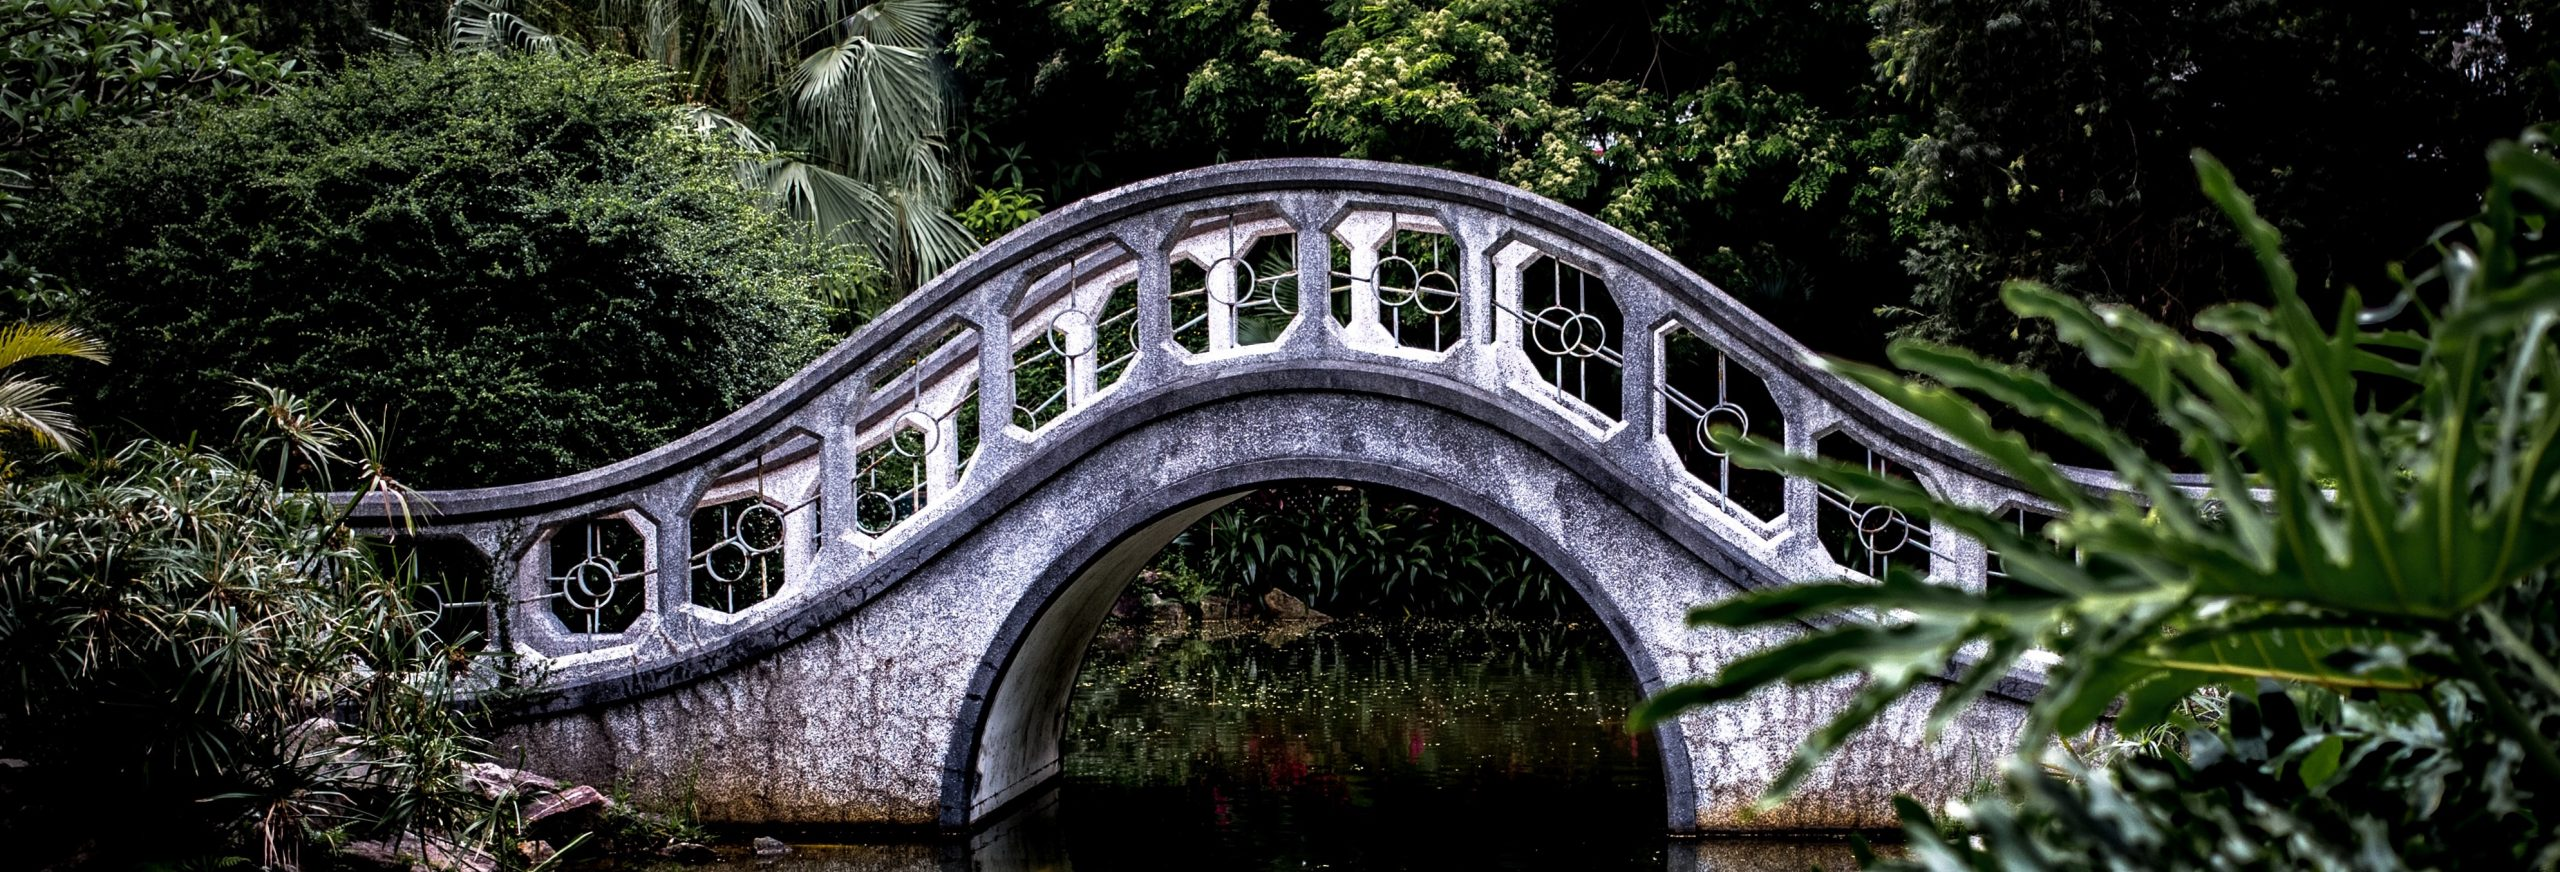 white arch bridge surrounded by green trees and plants spanning still water